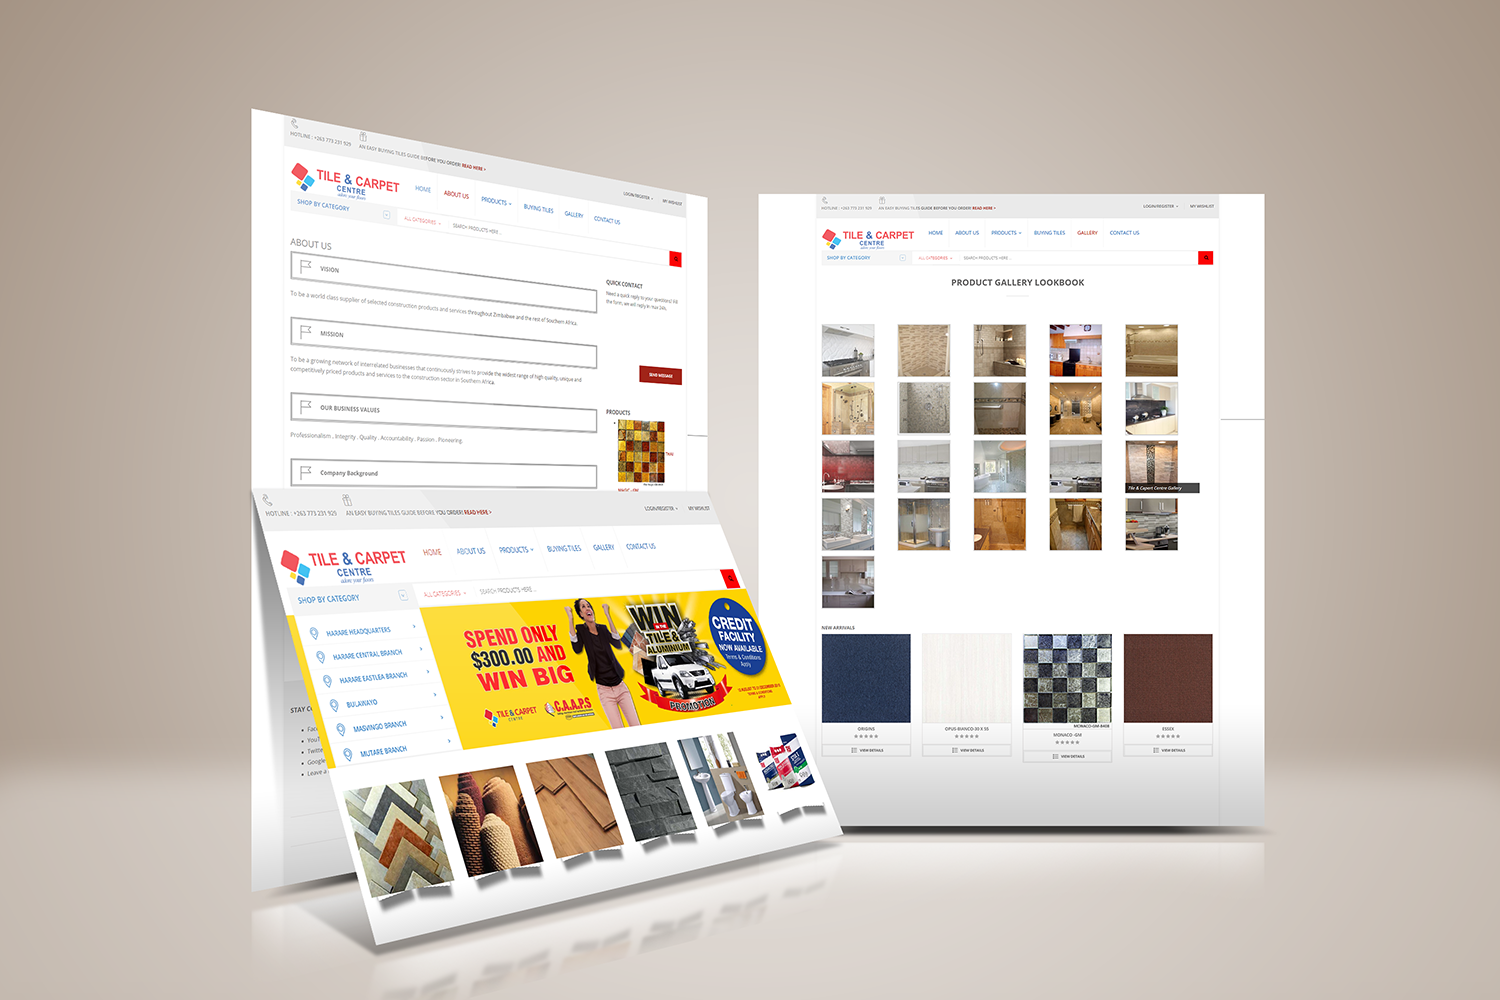 Website Development Tile & Carpet Centre showcase